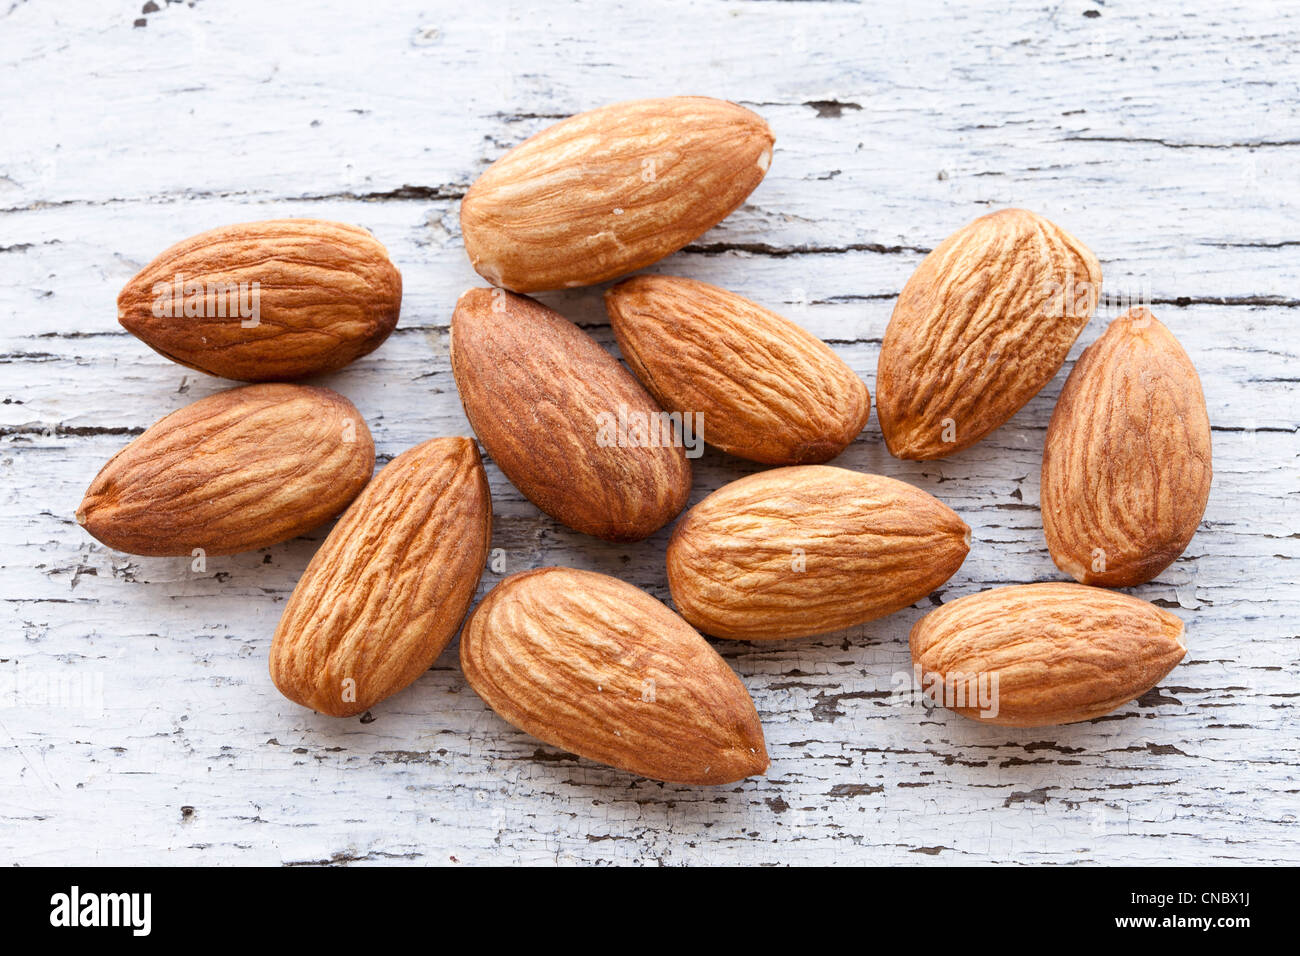 Almonds sitting on a counter top - Stock Image